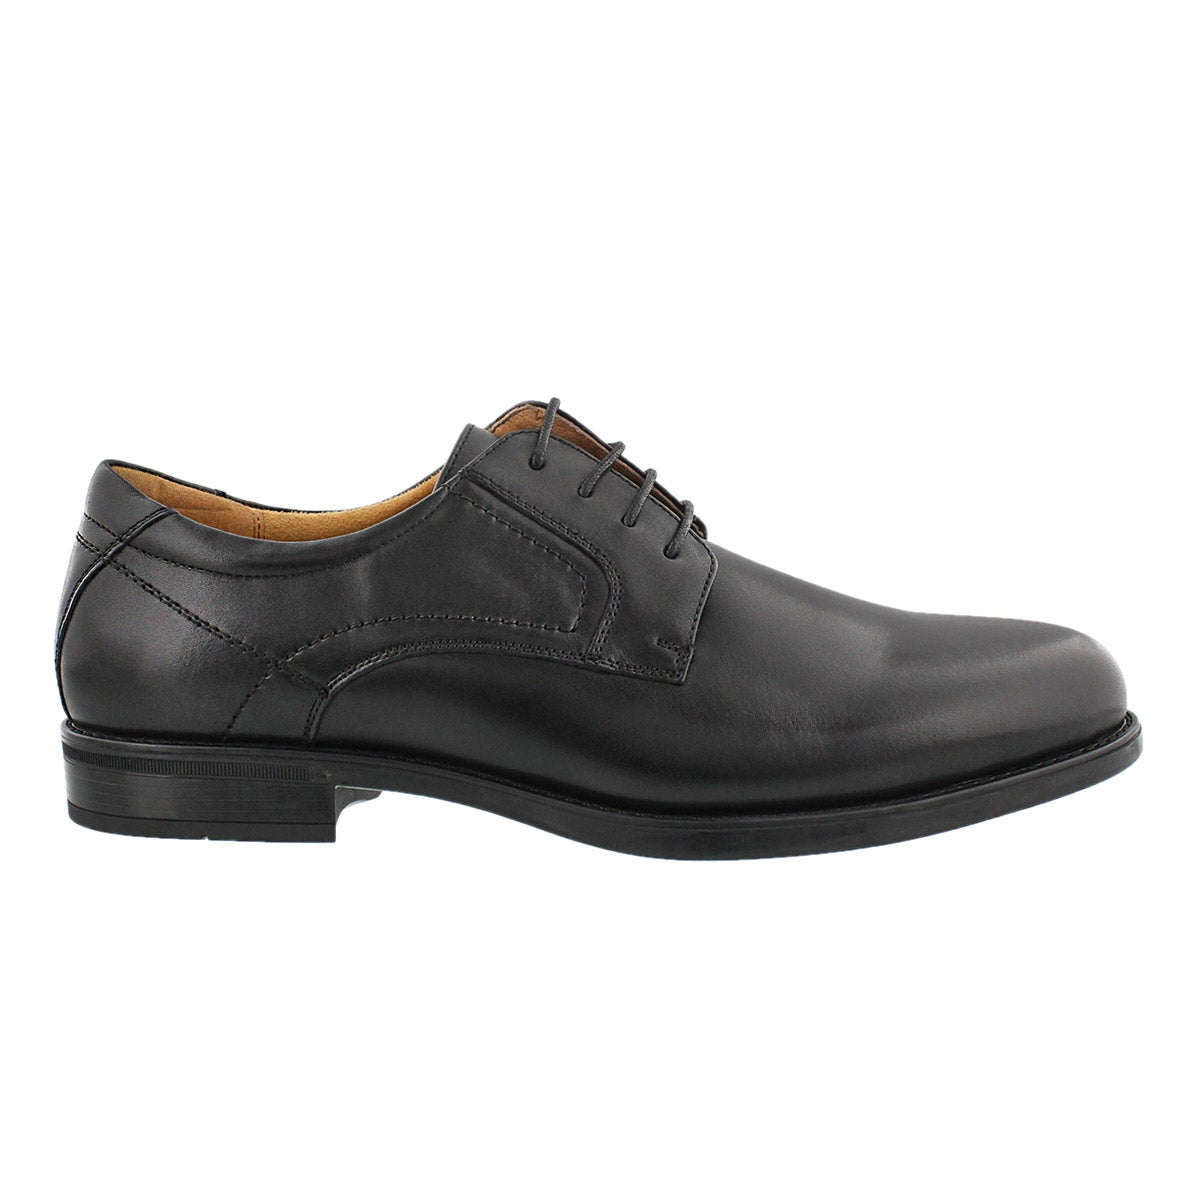 Mns MidtownPlainToe bk dress oxford-wide